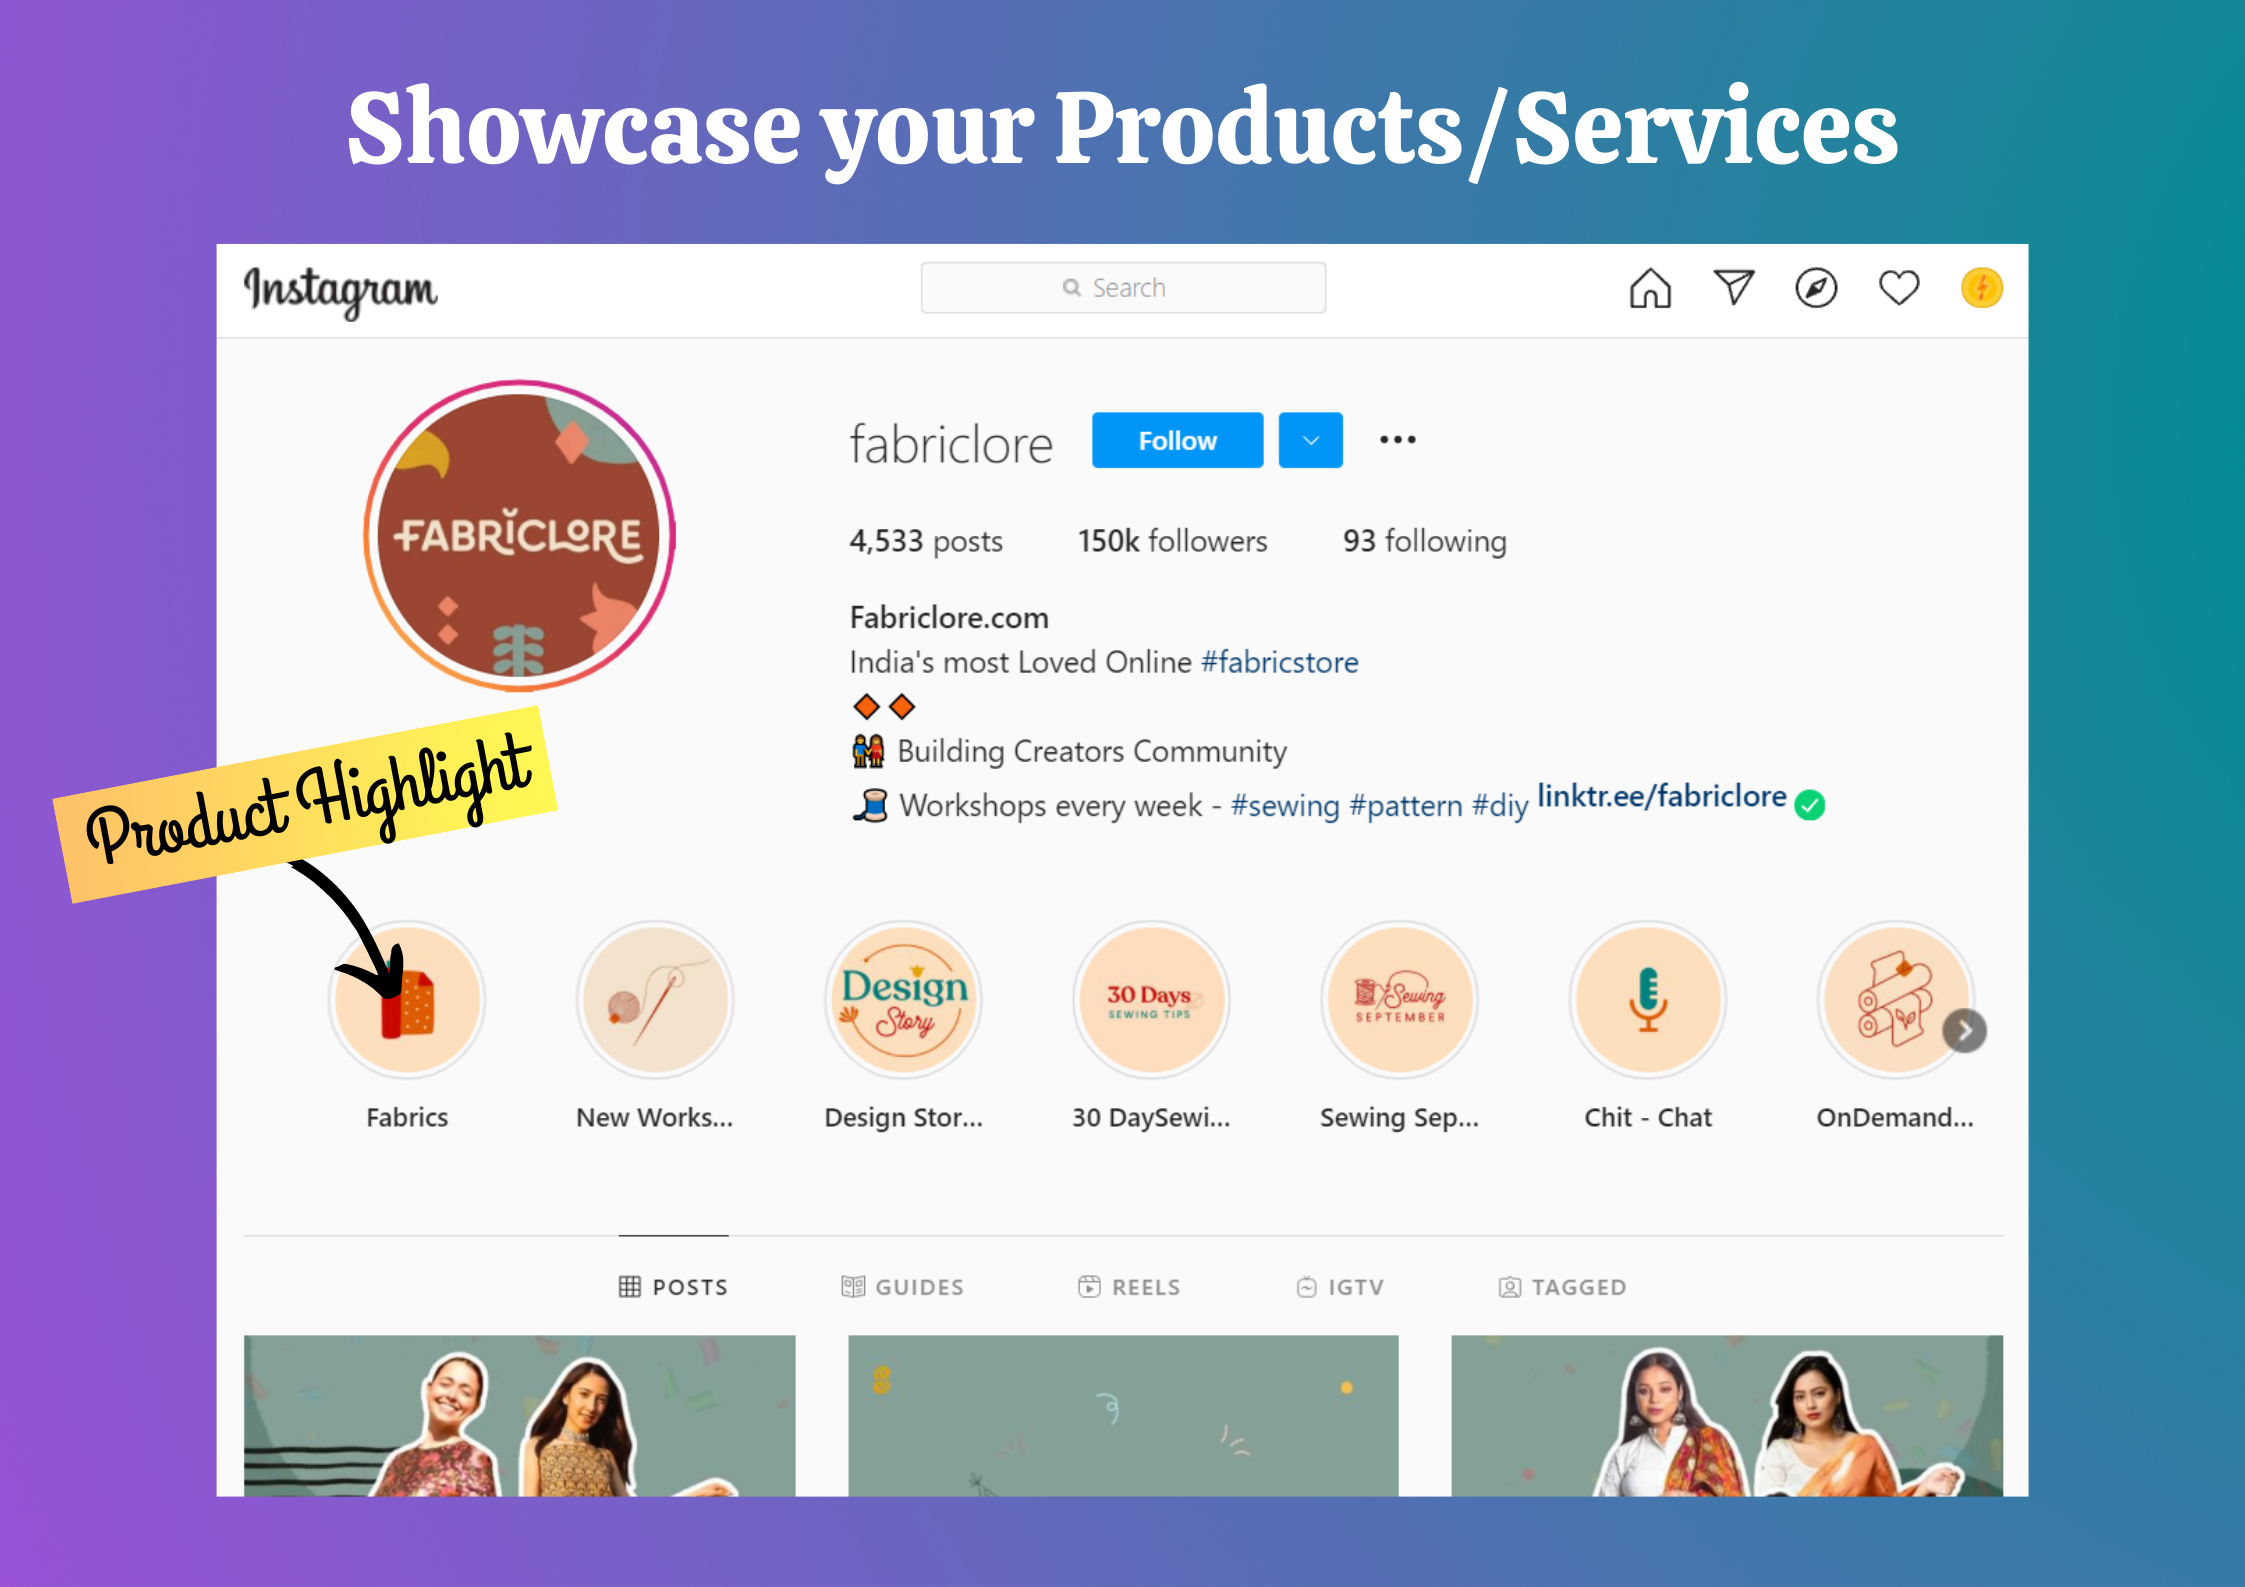 Instagram HIghlights of products